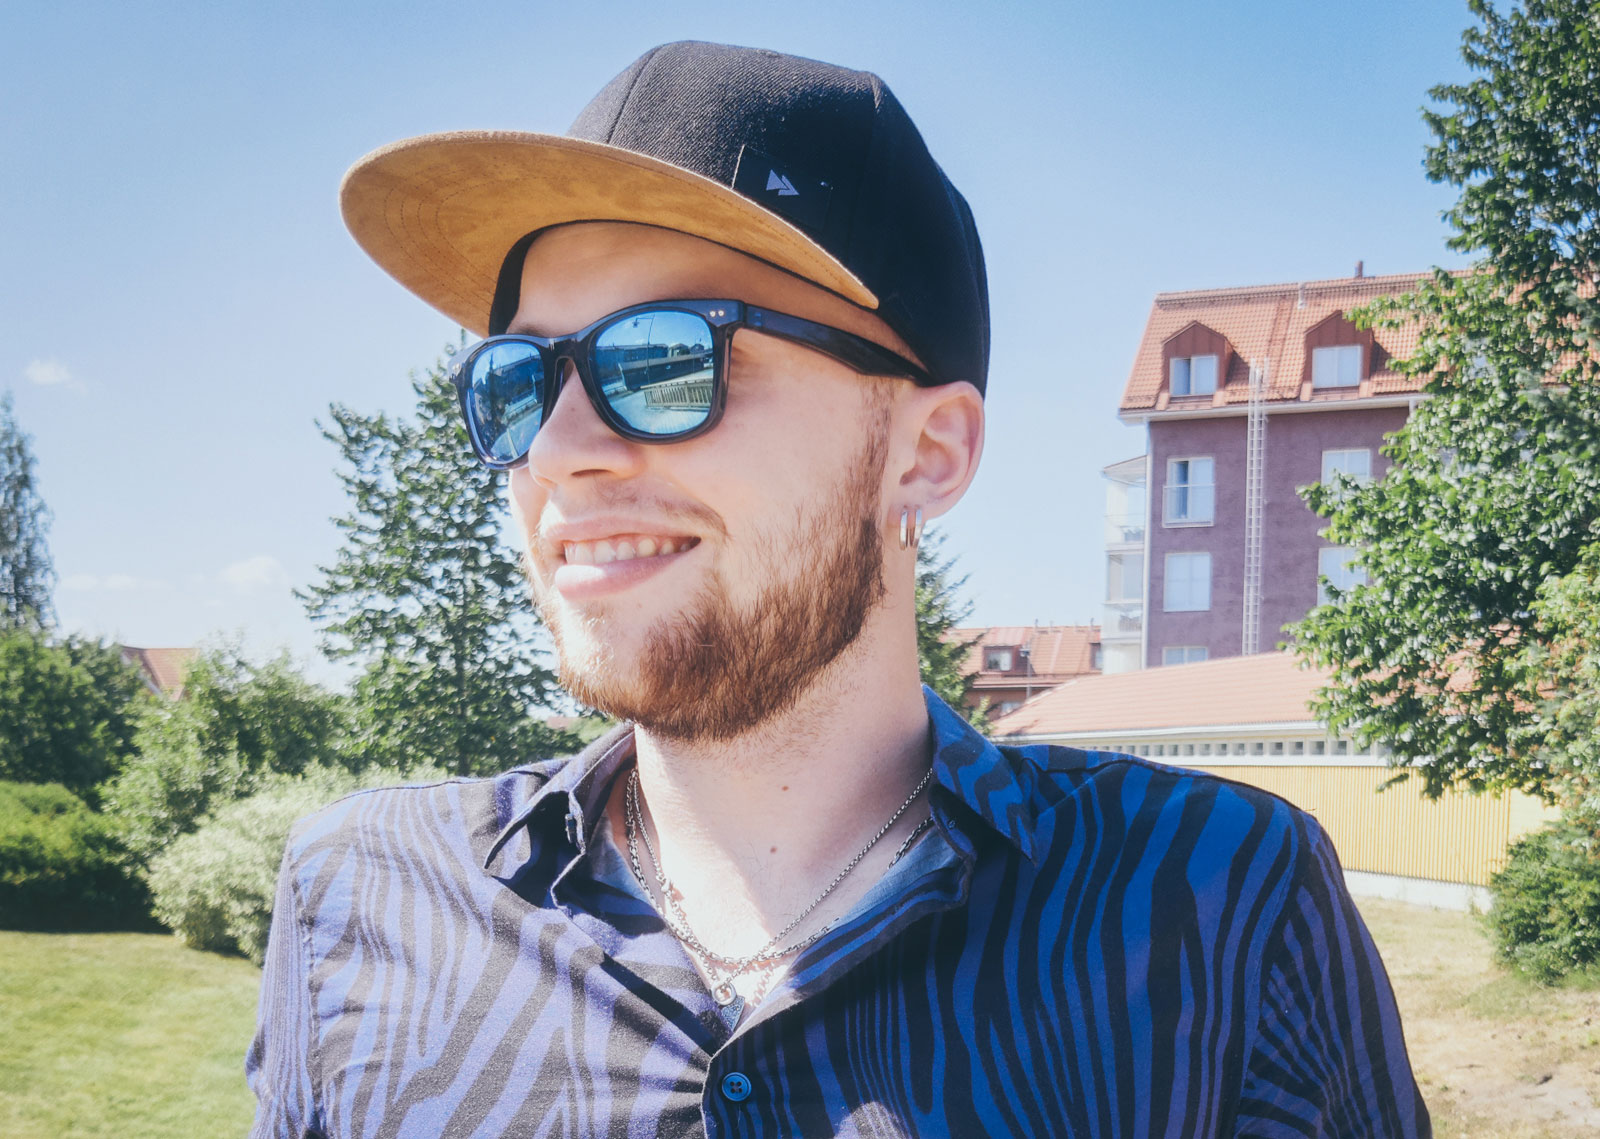 Lauri Kuusisto, enjoying a summer day during non-military service at the Helsinki XR Center.